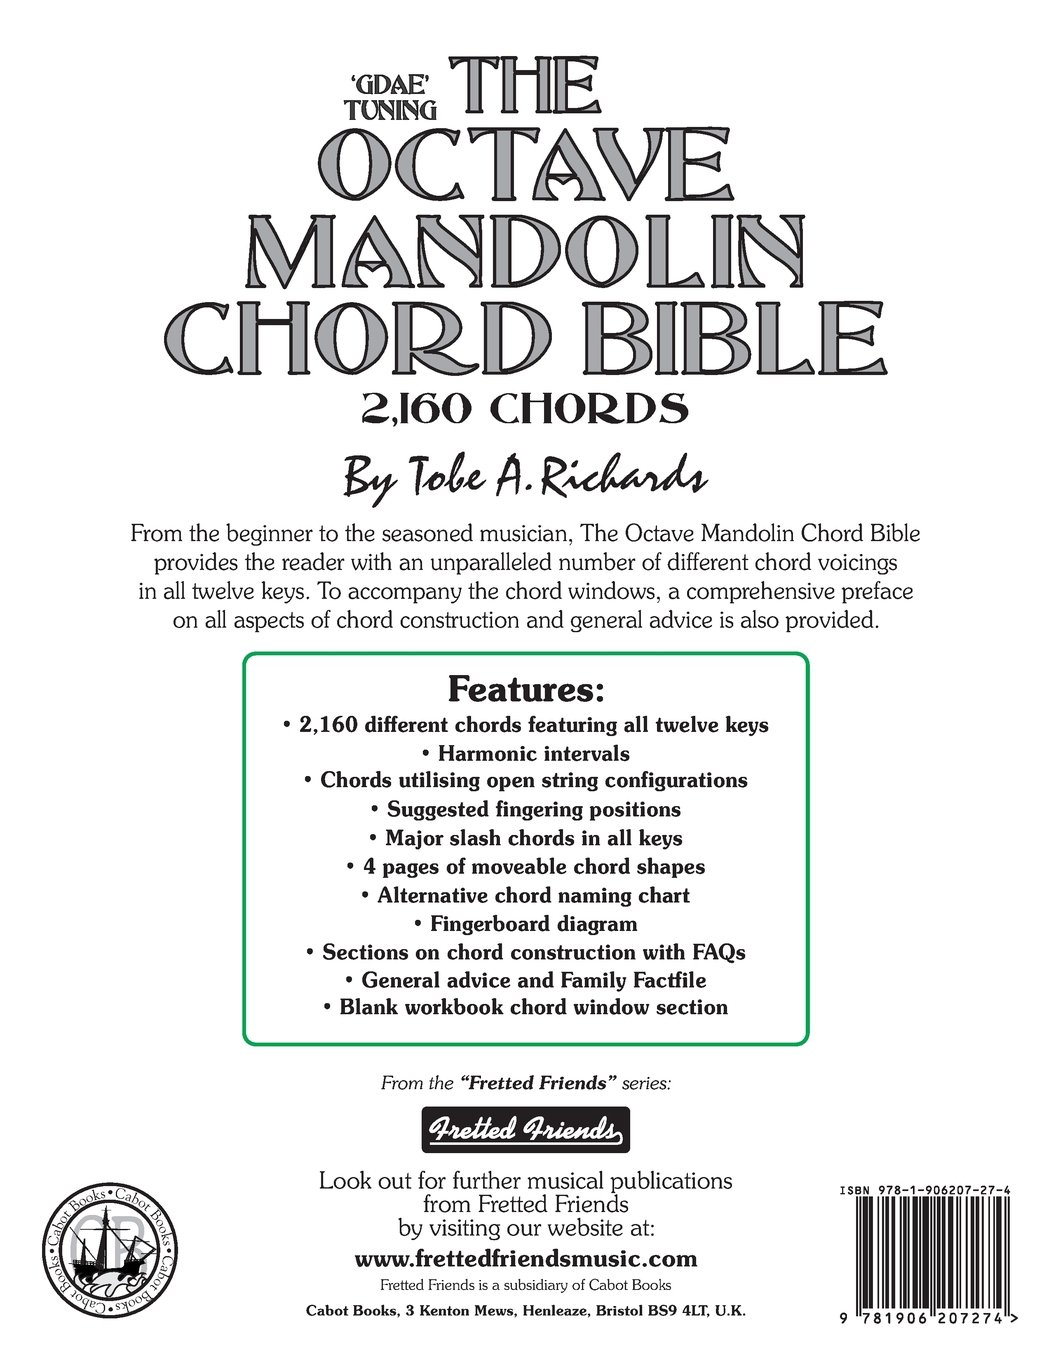 Amazon the octave mandolin chord bible gdae standard tuning amazon the octave mandolin chord bible gdae standard tuning 2160 chords fretted friends 9781906207274 tobe a richards books hexwebz Images